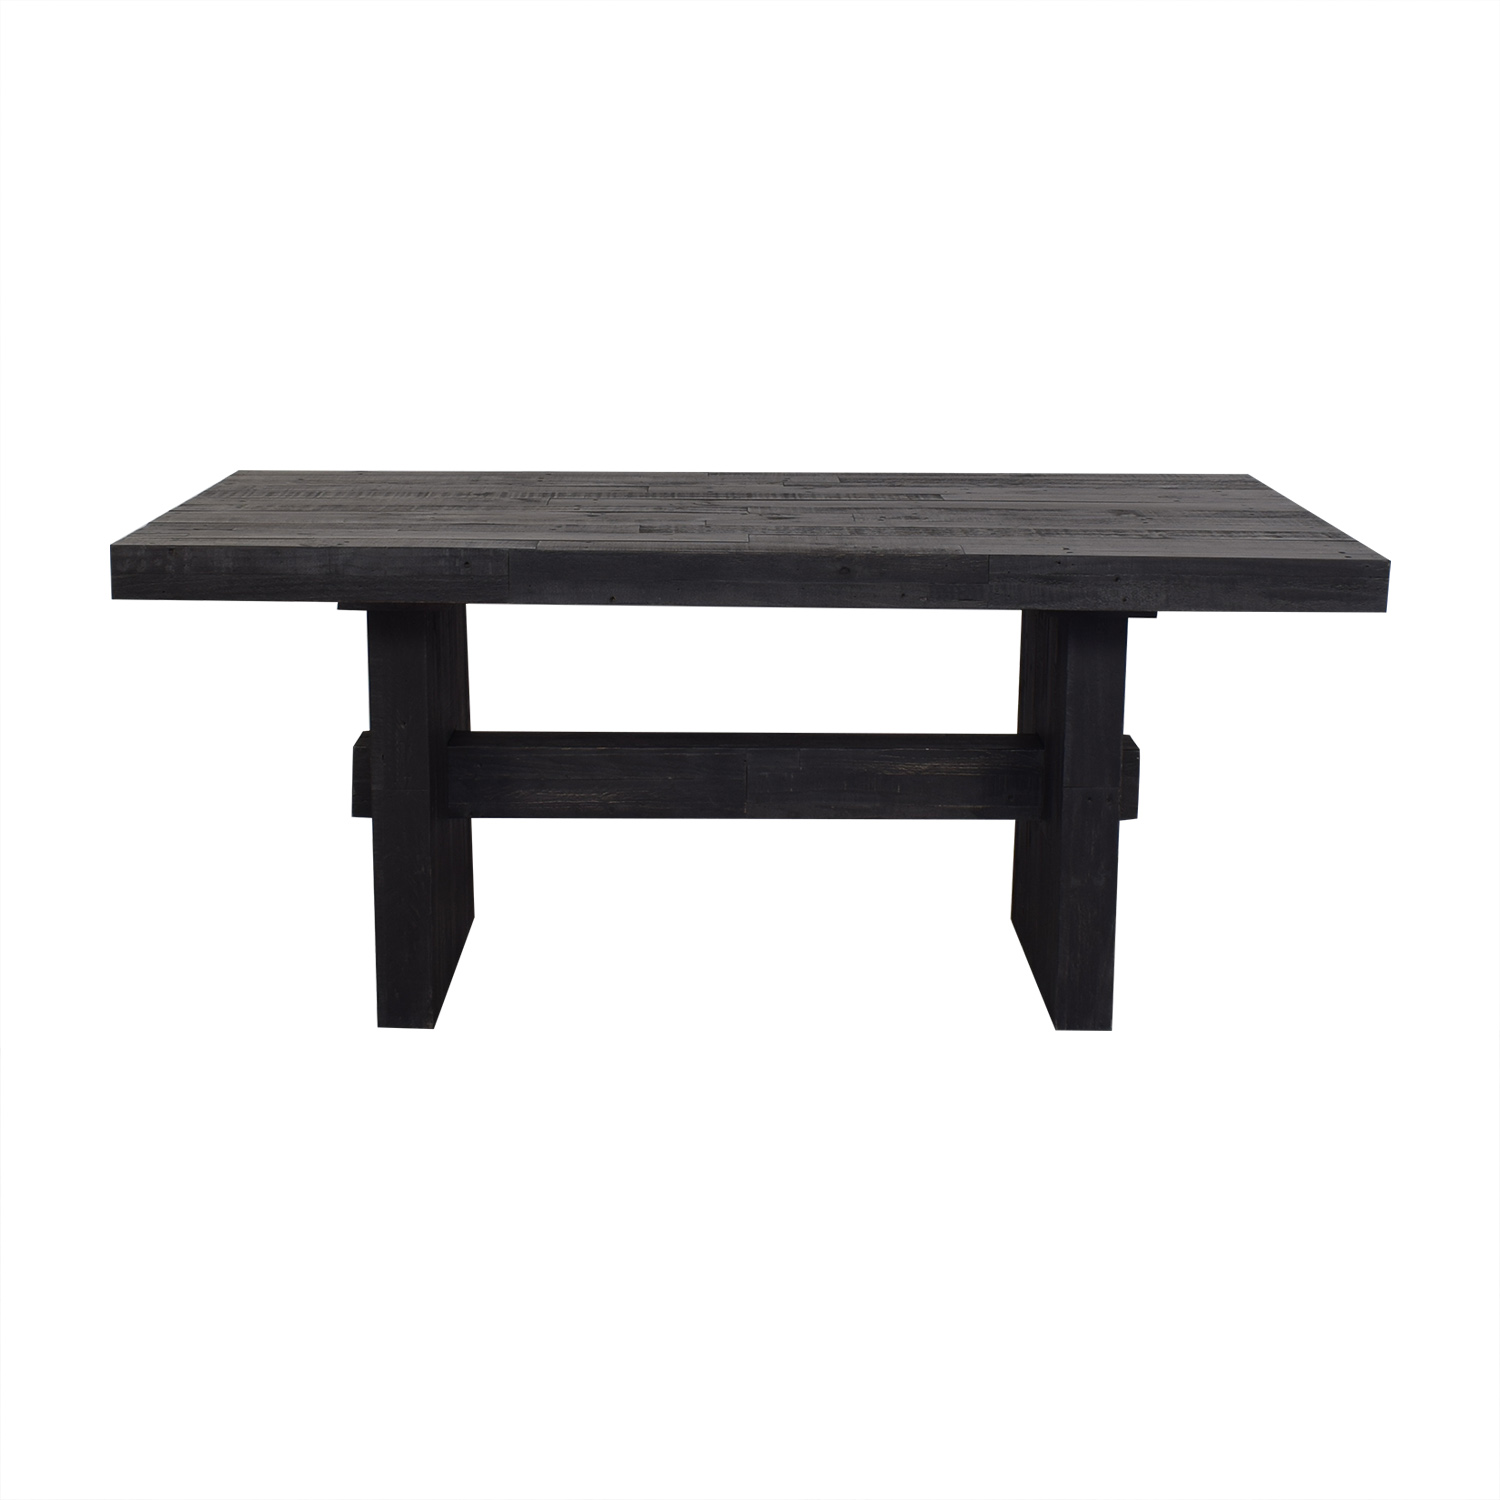 West Elm West Elm Black Emmerson Reclaimed Dining Table second hand